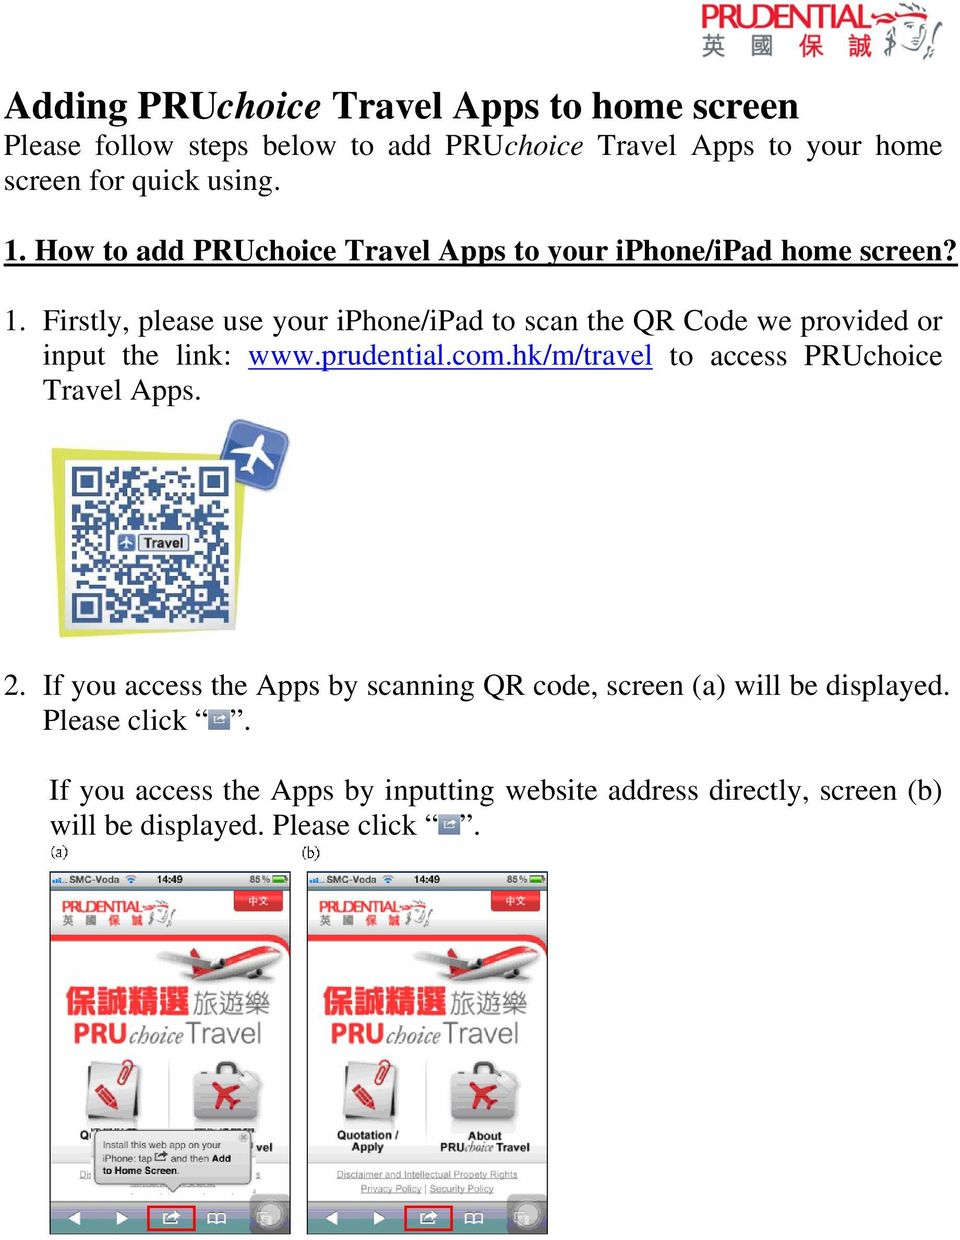 Firstly, please use your iphone/ipad to scan the QR Code we provided or input the link: www.prudential.com.